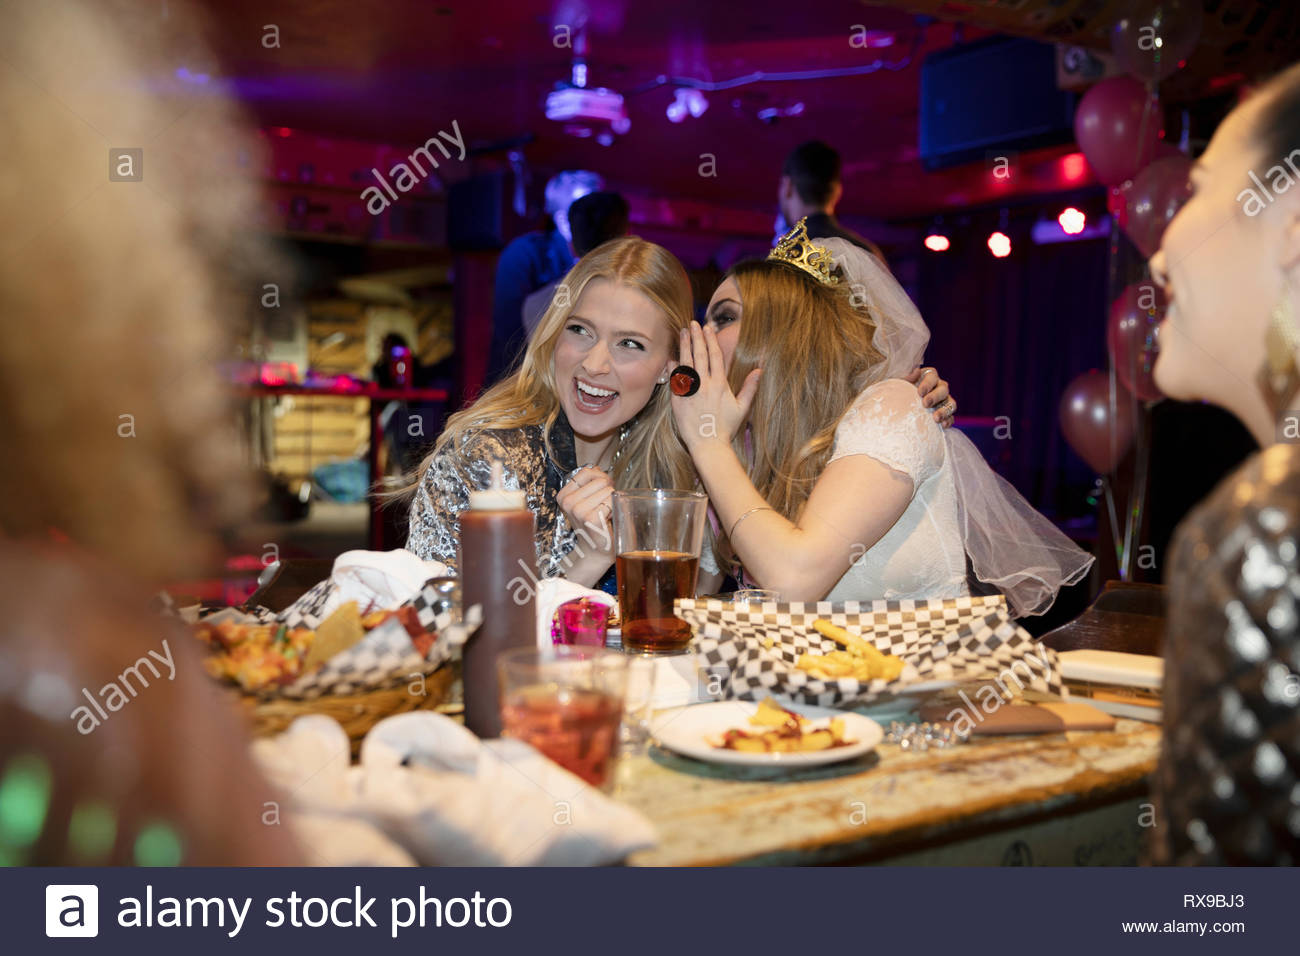 Bachelorette whispering in ear of friend at late night diner - Stock Image